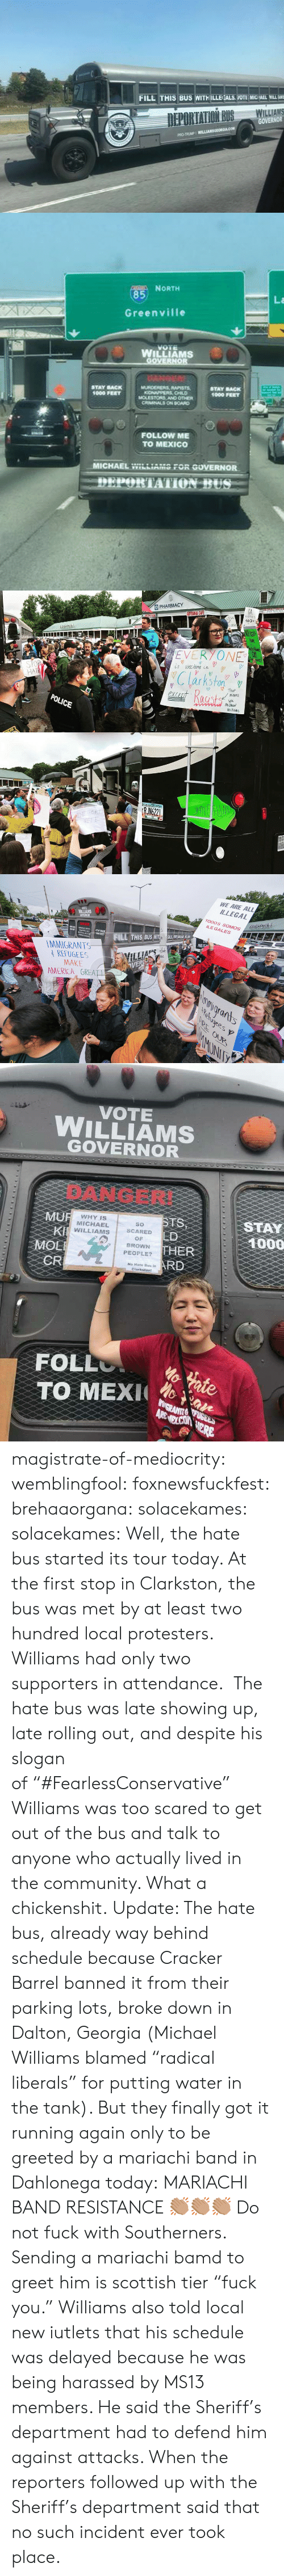 """America, cnn.com, and Community: FILL THIS BUS WITH ILLEIEALS, YOTE MICHAEL WILL NS   85  La  Greenville  WILLIAMS  STAY BACK  1000 FEET  MOLESTORS, AND OTHER  1000 FEET  FOLLOW ME  TO MEXICO  MICHAEL  """"r-in-no  -OR  GOVERNOR   , PHARMACY  GA  VOTES  STO  arkfon  means  POLICE  hichal  RJNG22  DE PORT   WE ARE ALL  ILLEGALt  TODOS SOMOS  ILE GALES  WILLIAMS  NEIC  ILL THIS BUS ITALS T  MMIGRANTS  REFUGEES  MAKE  AMERICA GREA  swunrants  OUR  Ily   VOTE  WILLIAMS  GOVERNOR  DANGER!  MU  Kl  MOE  CR  STS  LD  THER  RD  WHYIS  MICHAEL  WILLIAMS  So  SCARED  OF  BROWN  PEOPLE?  STAY  1000  Hate Bus in  Clarkstonl  FOLL  TO MEX ae magistrate-of-mediocrity: wemblingfool:   foxnewsfuckfest:  brehaaorgana:   solacekames:   solacekames: Well, the hate bus started its tour today. At the first stop in Clarkston, the bus was met by at least two hundred local protesters. Williams had only two supporters in attendance. The hate bus was late showing up, late rolling out, and despite his slogan of""""#FearlessConservative"""" Williams was too scared to get out of the bus and talk to anyone who actually lived in the community. What a chickenshit. Update: The hate bus, already way behind schedule because Cracker Barrel banned it from their parking lots, broke down in Dalton, Georgia (Michael Williams blamed """"radical liberals"""" for putting water in the tank). But they finally got it running again only to be greeted by a mariachi band in Dahlonega today:   MARIACHI BAND RESISTANCE 👏🏽👏🏽👏🏽   Do not fuck with Southerners.  Sending a mariachi bamd to greet him is scottish tier """"fuck you.""""   Williams also told local new iutlets that his schedule was delayed because he was being harassed by MS13 members. He said the Sheriff's department had to defend him against attacks. When the reporters followed up with the Sheriff's department said that no such incident ever took place."""